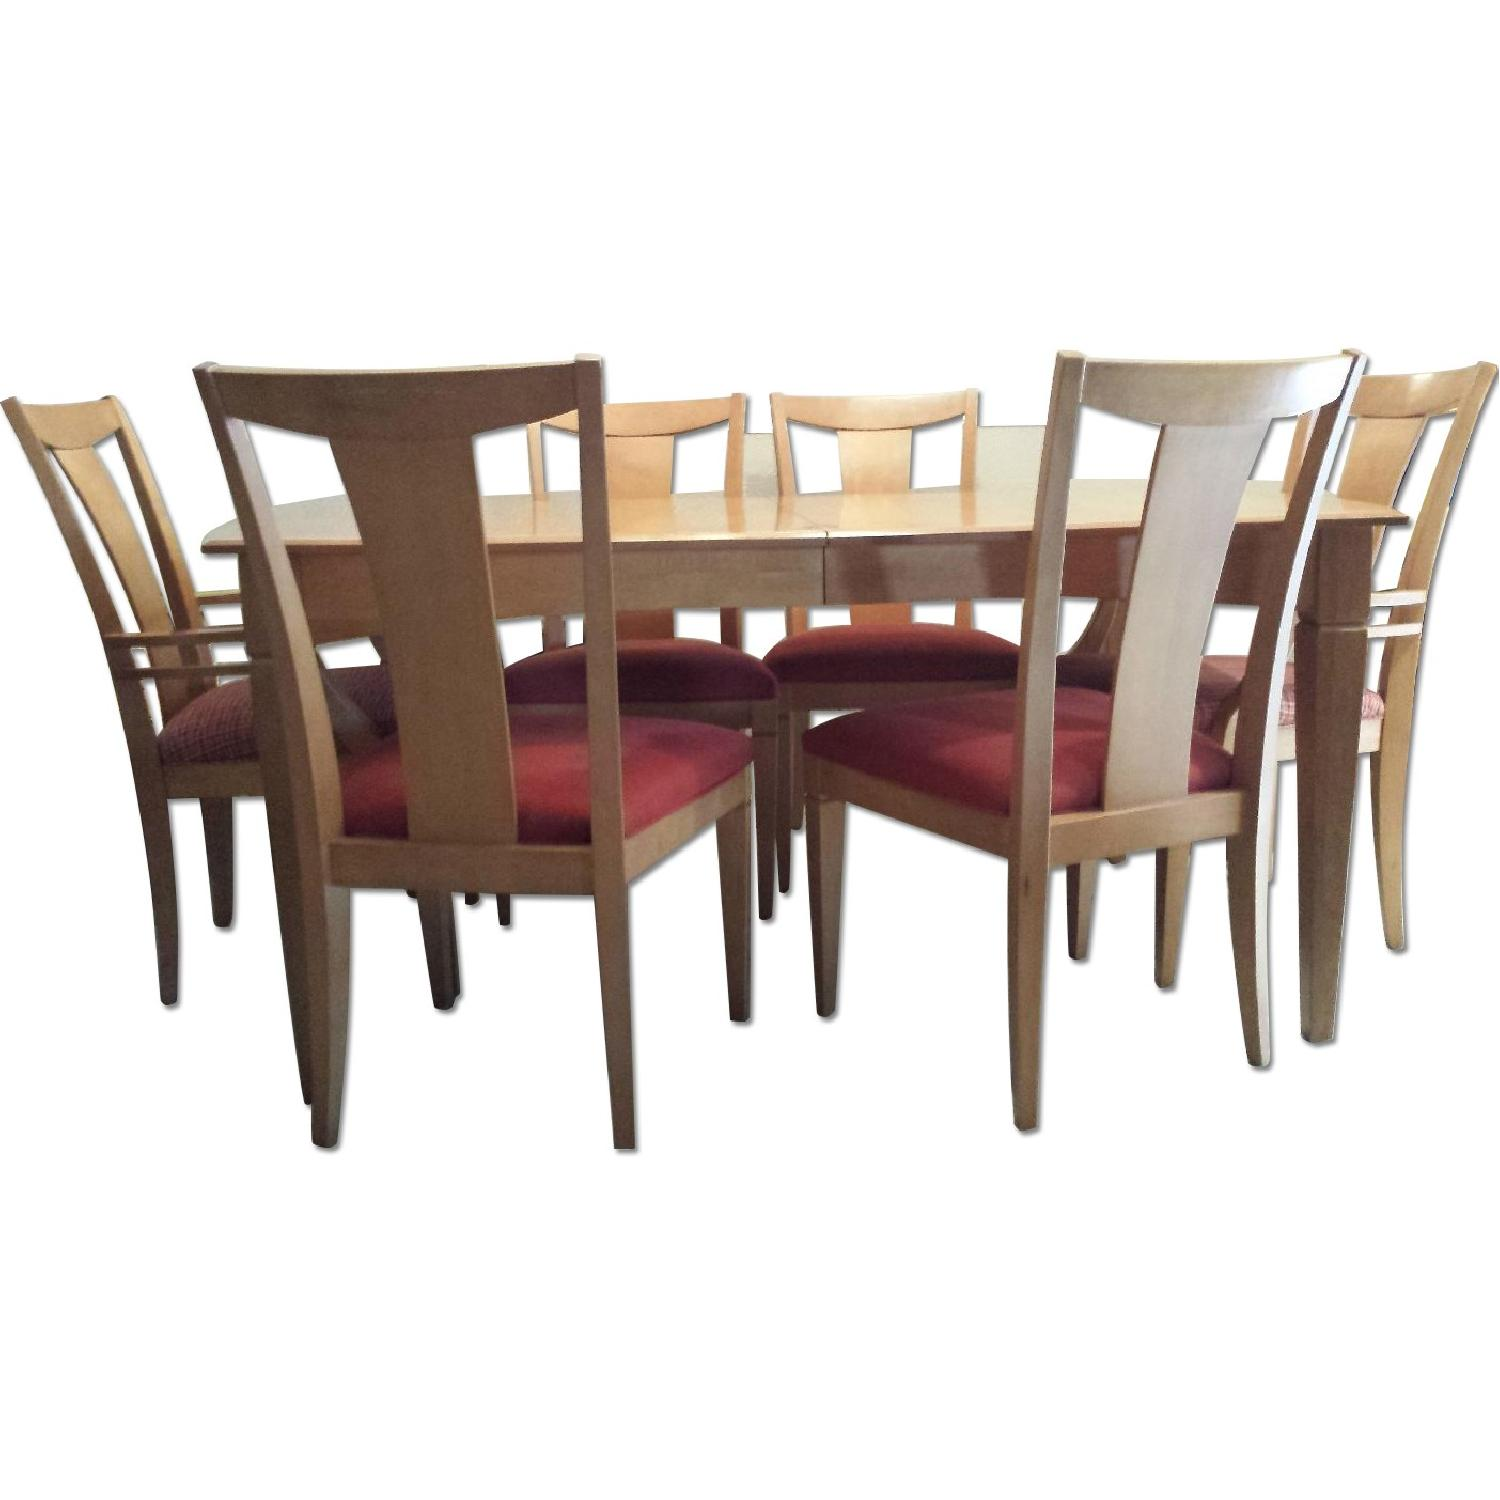 Ethan allen maple dining room table w 6 chairs for Maple dining room table